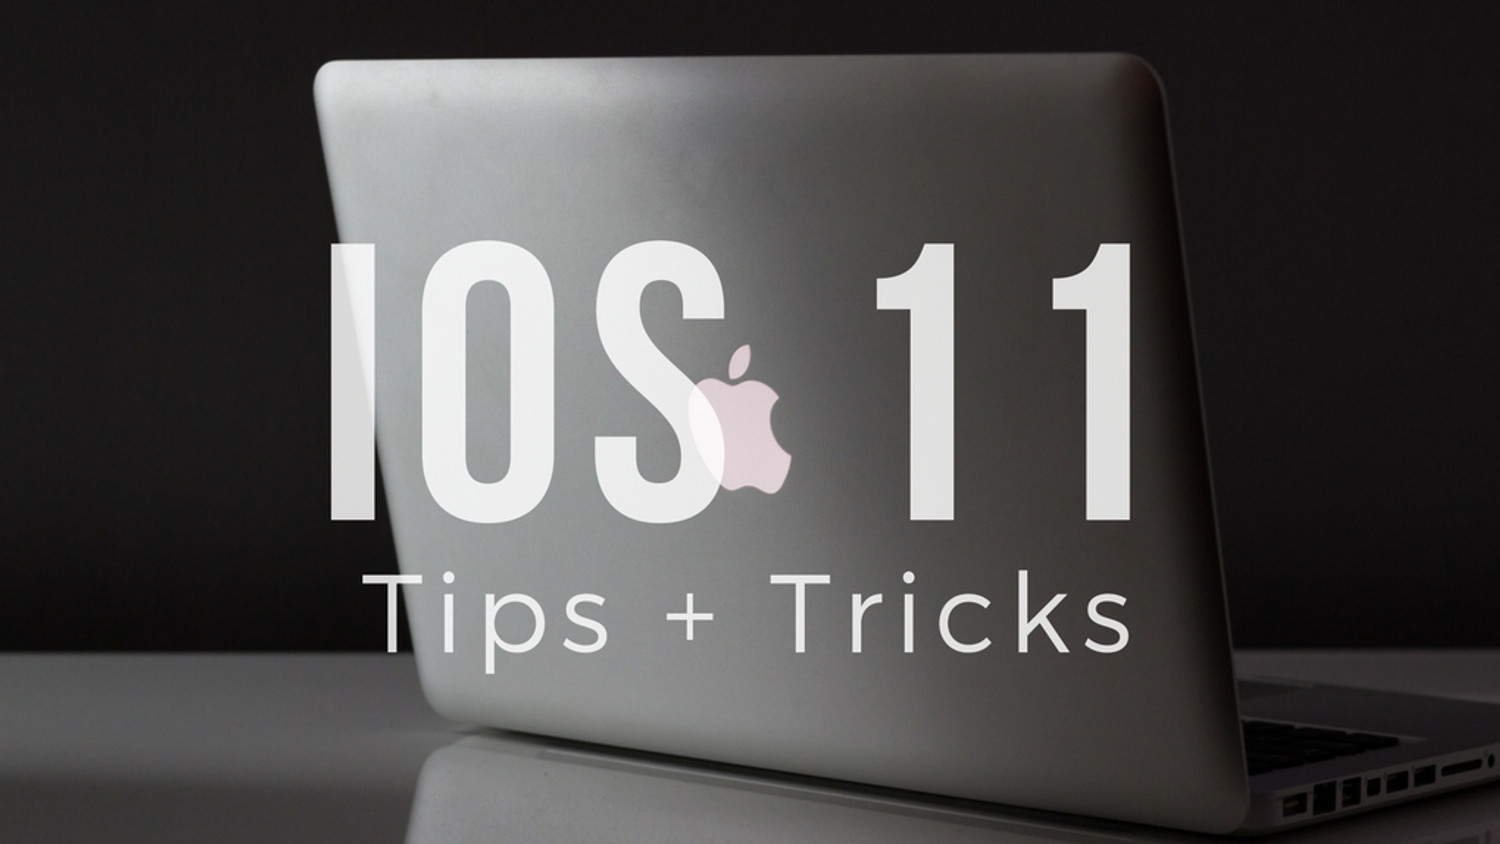 iOS 11 Tips and Tricks